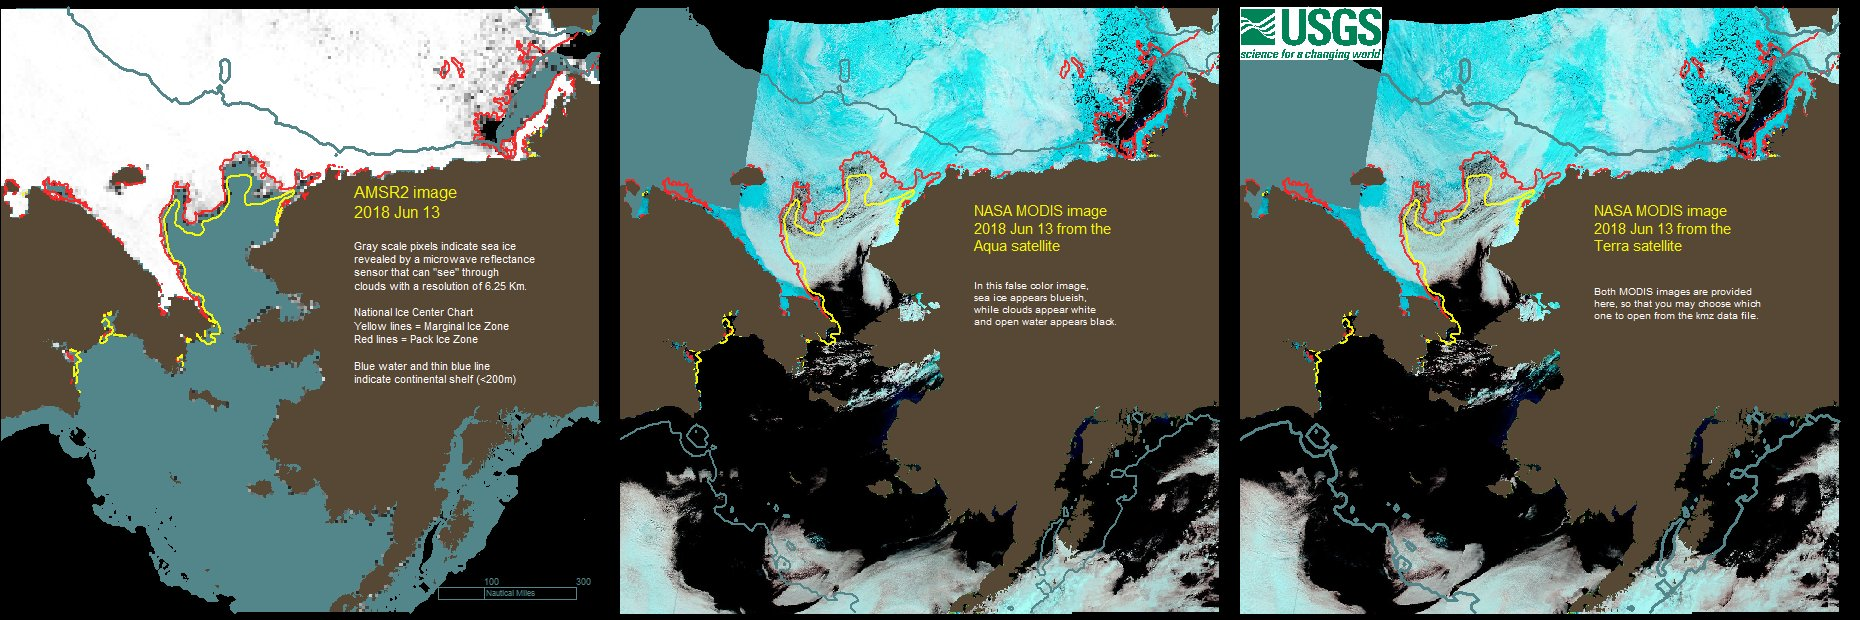 Daily Ice Mail Map for June 13, 2018, compiled from satellite images (Aqua and Terra) and charts created by National Ice Center. Image Credit: Anthony Fischbach for USGS